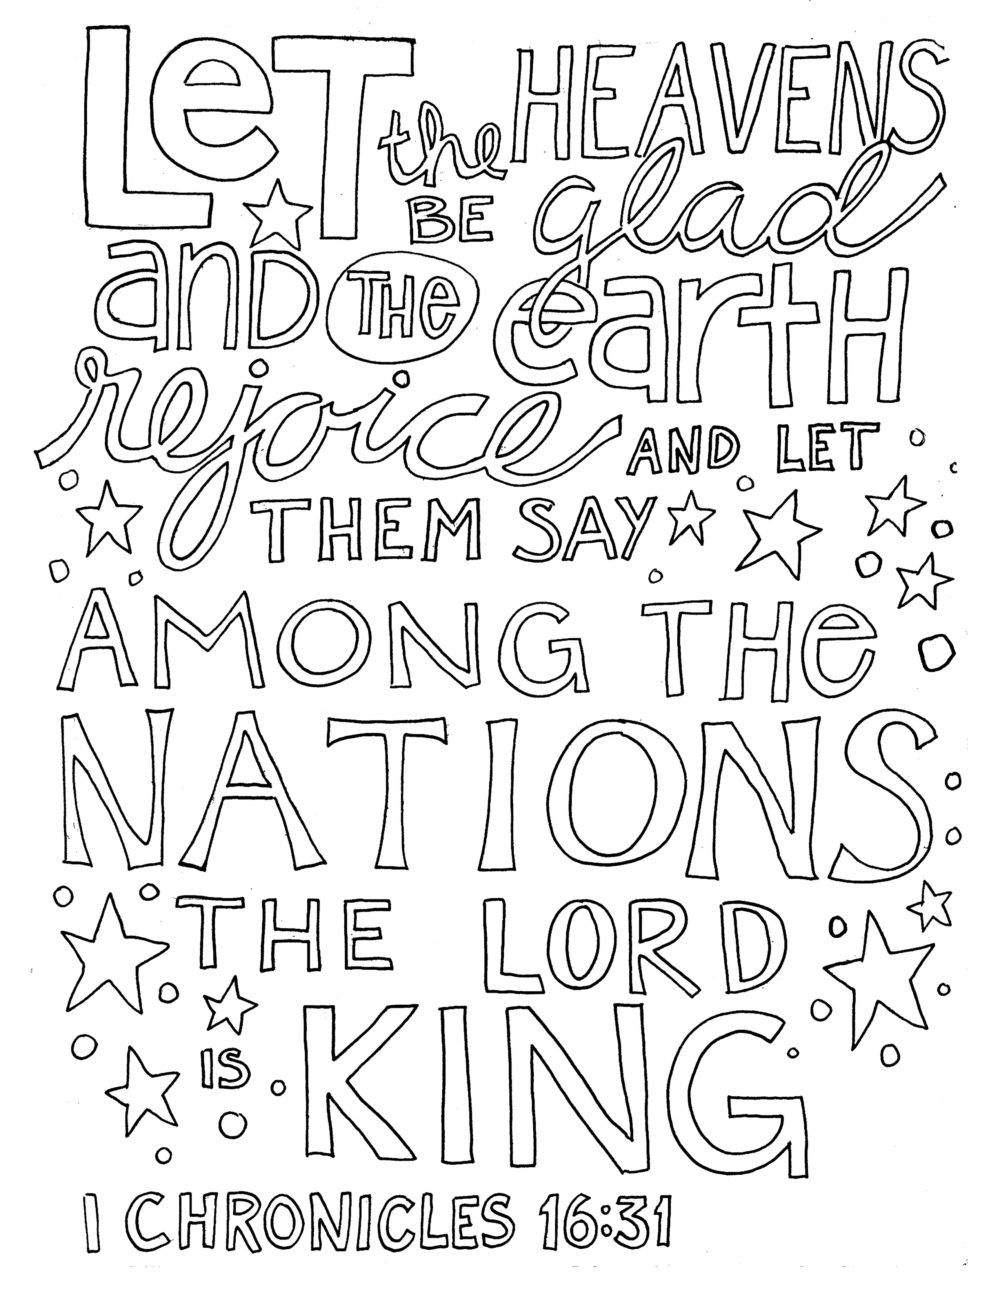 Let The Heavens Be Glad And The Earth Rejoice And Let Them Say